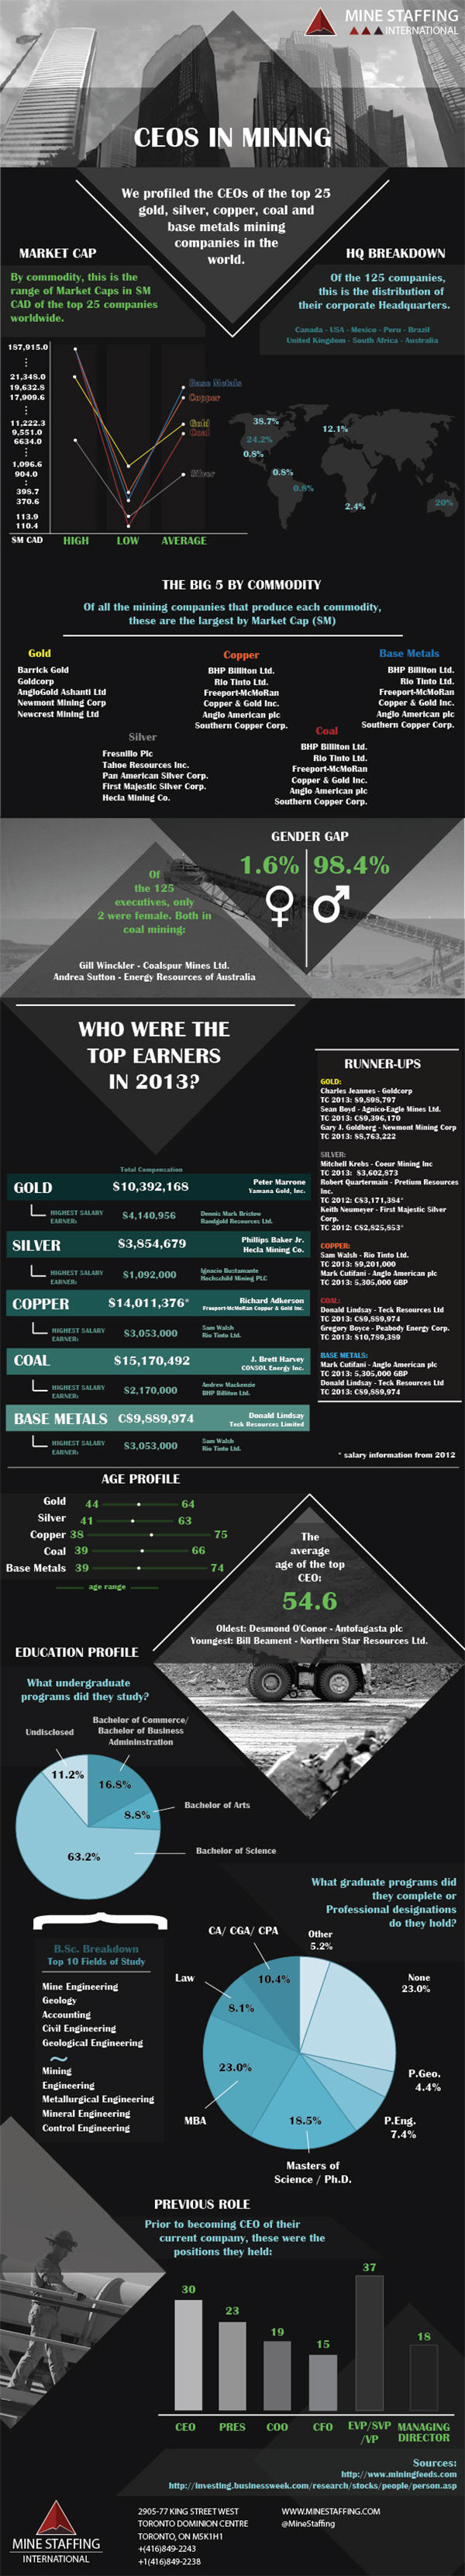 INFOGRAPHIC: Top mining CEOs – who earns what ? Bullion, Base Metal & Coal.